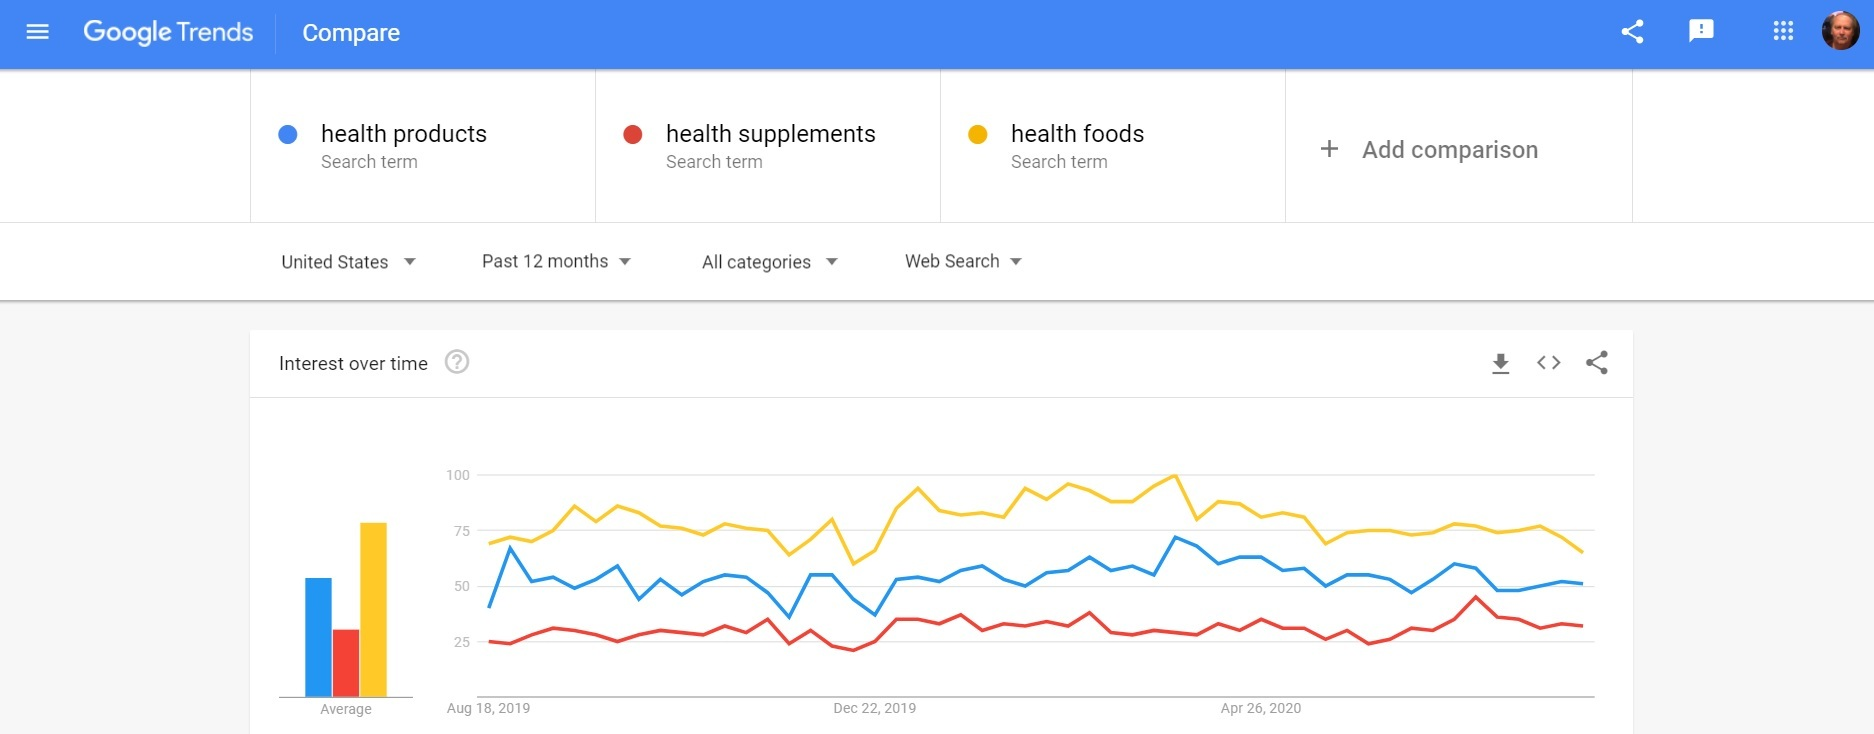 Google Trends Health Products